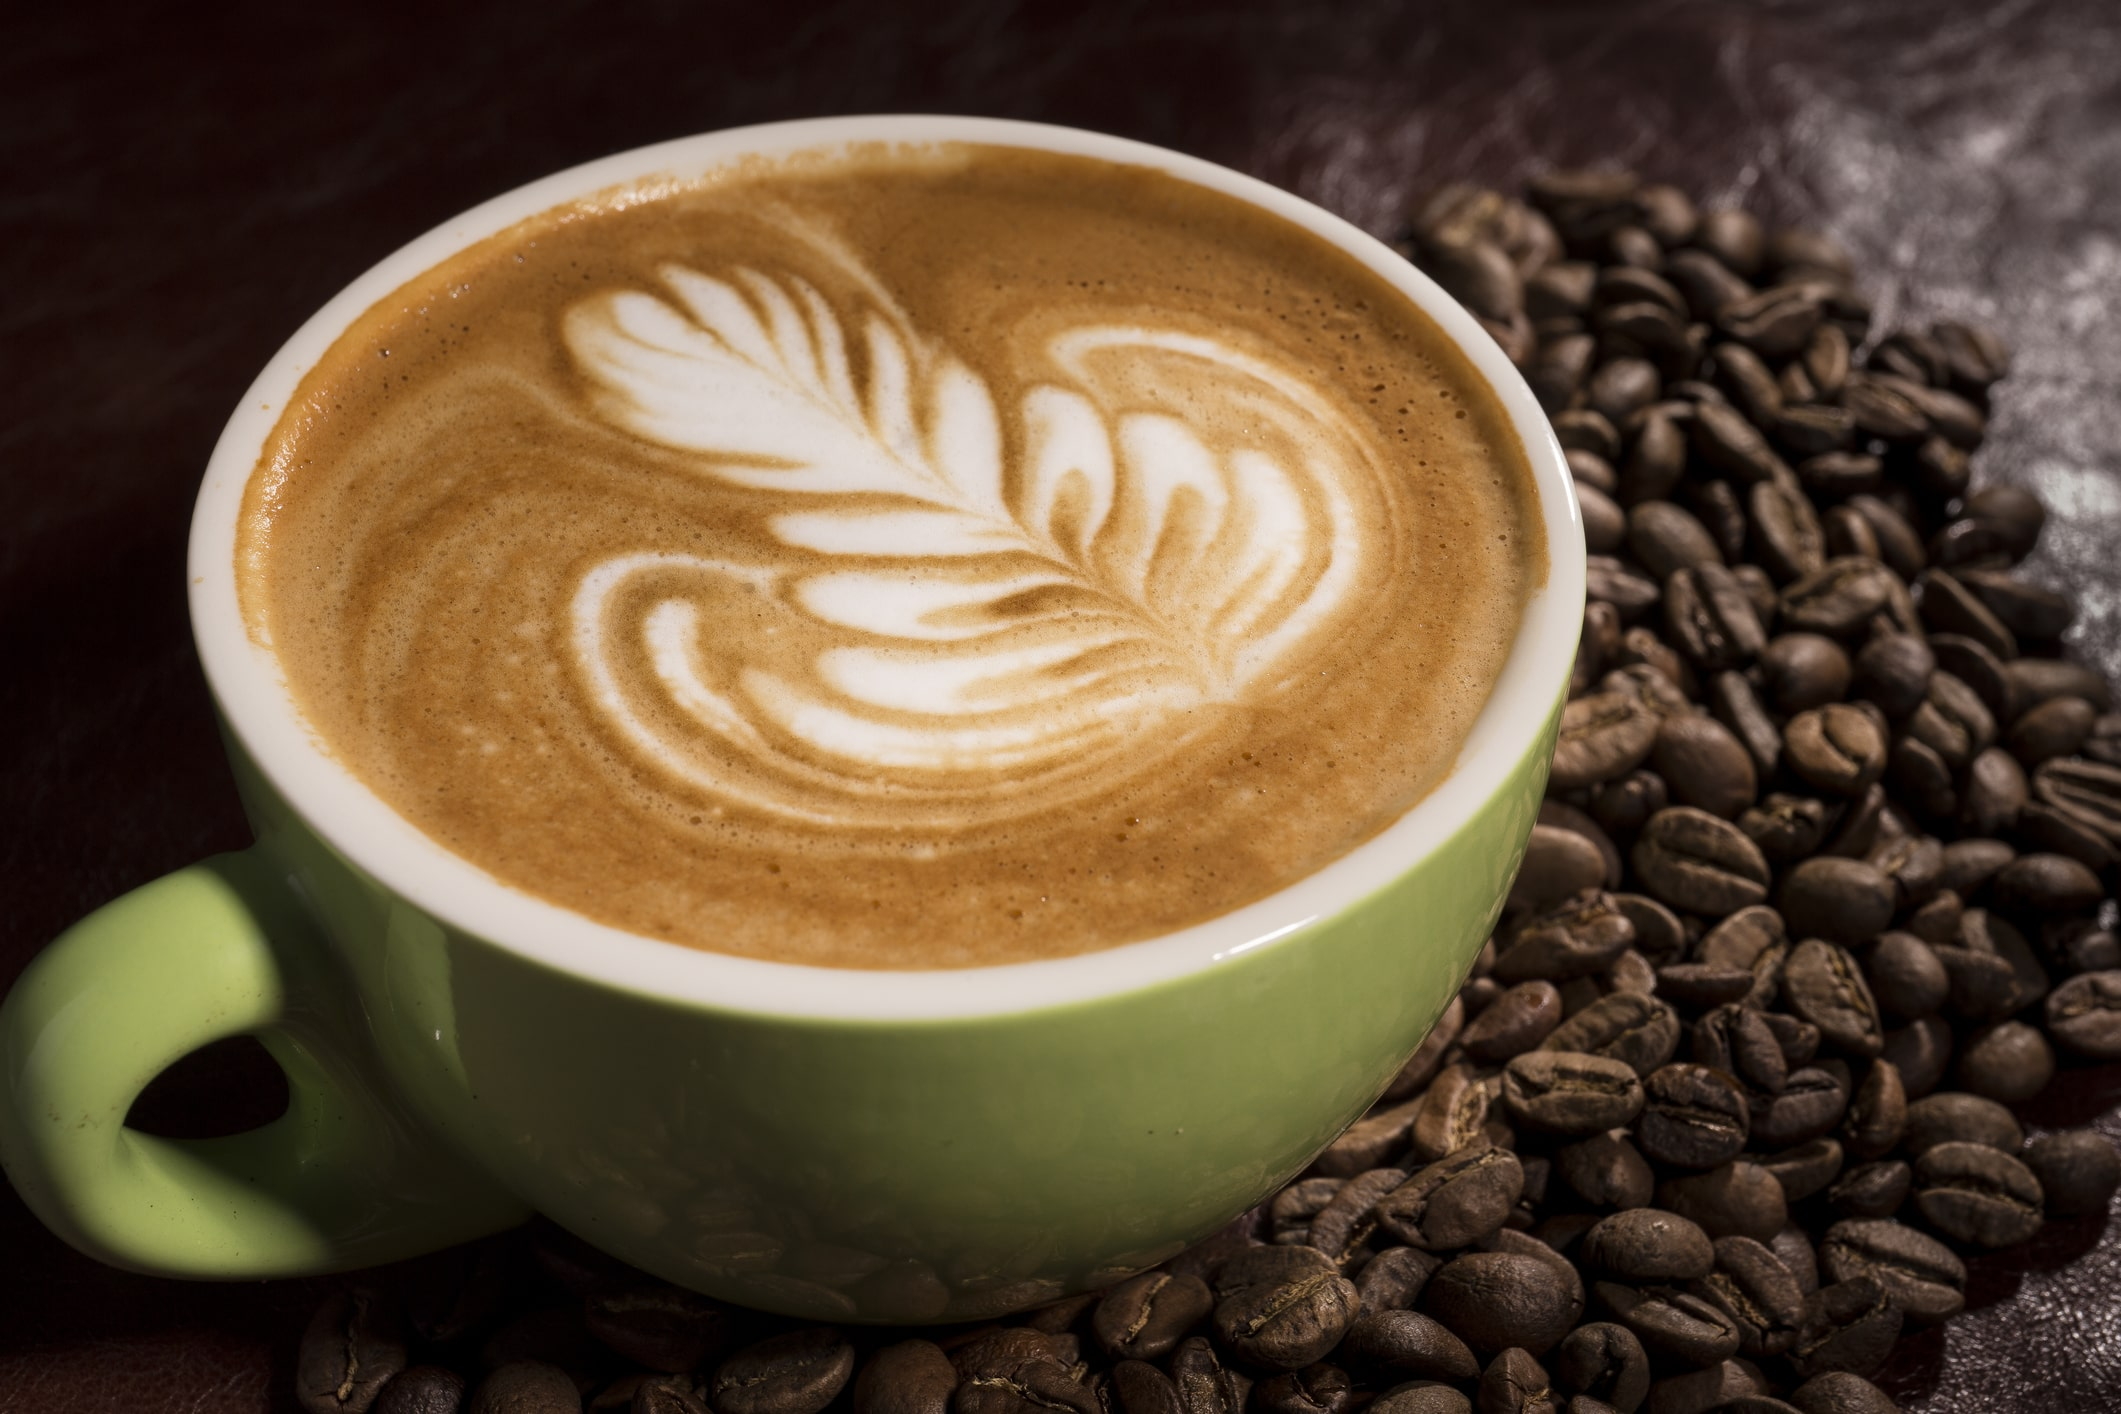 a-cup-of-coffee-with-latte-art-39734693-min